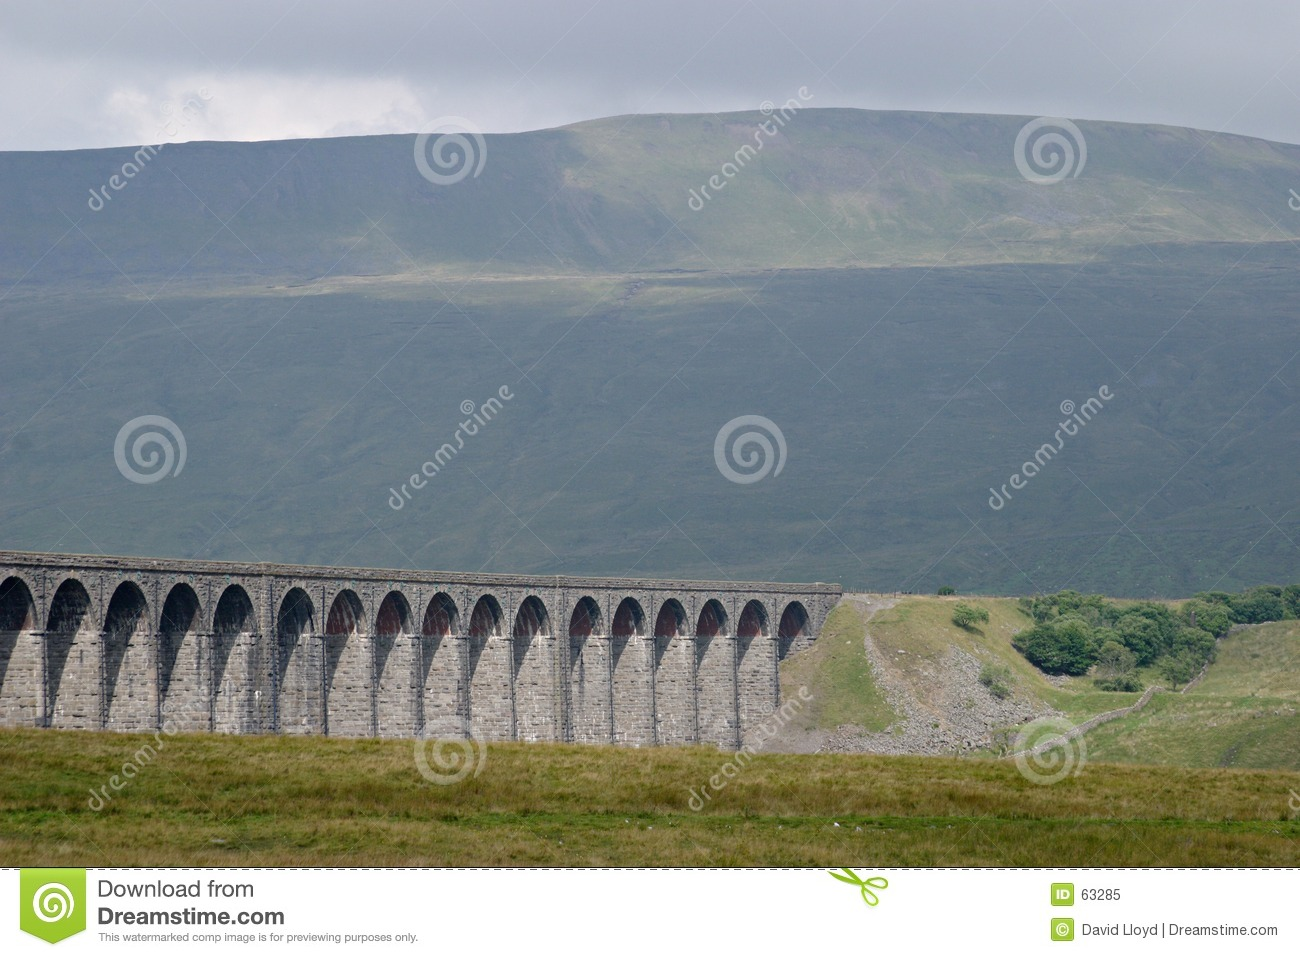 Viaducto de Ribblehead